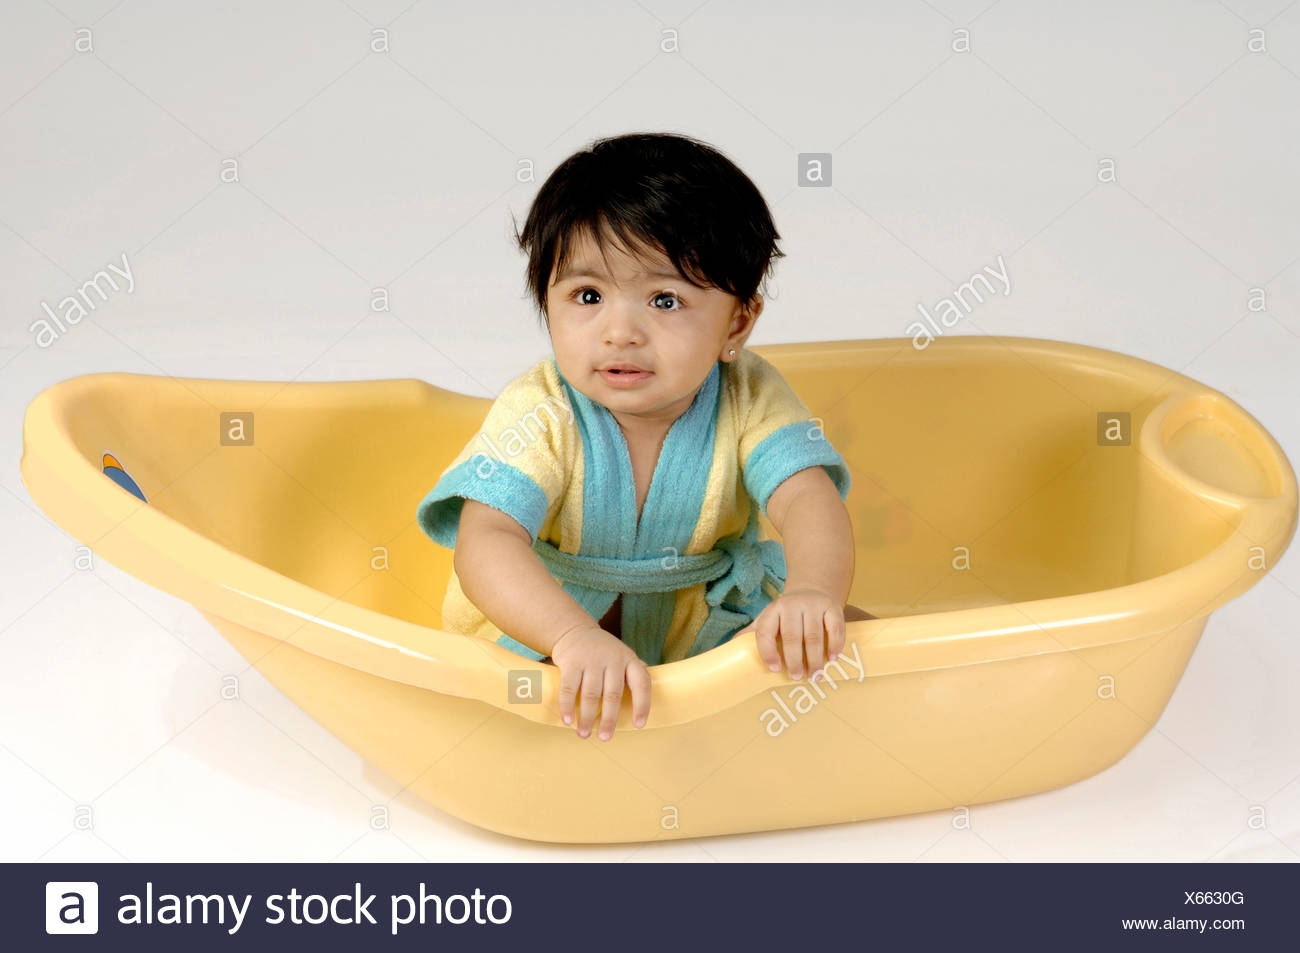 Indian Baby playing in yellow bath tub ; MR Stock Photo: 279187904 ...